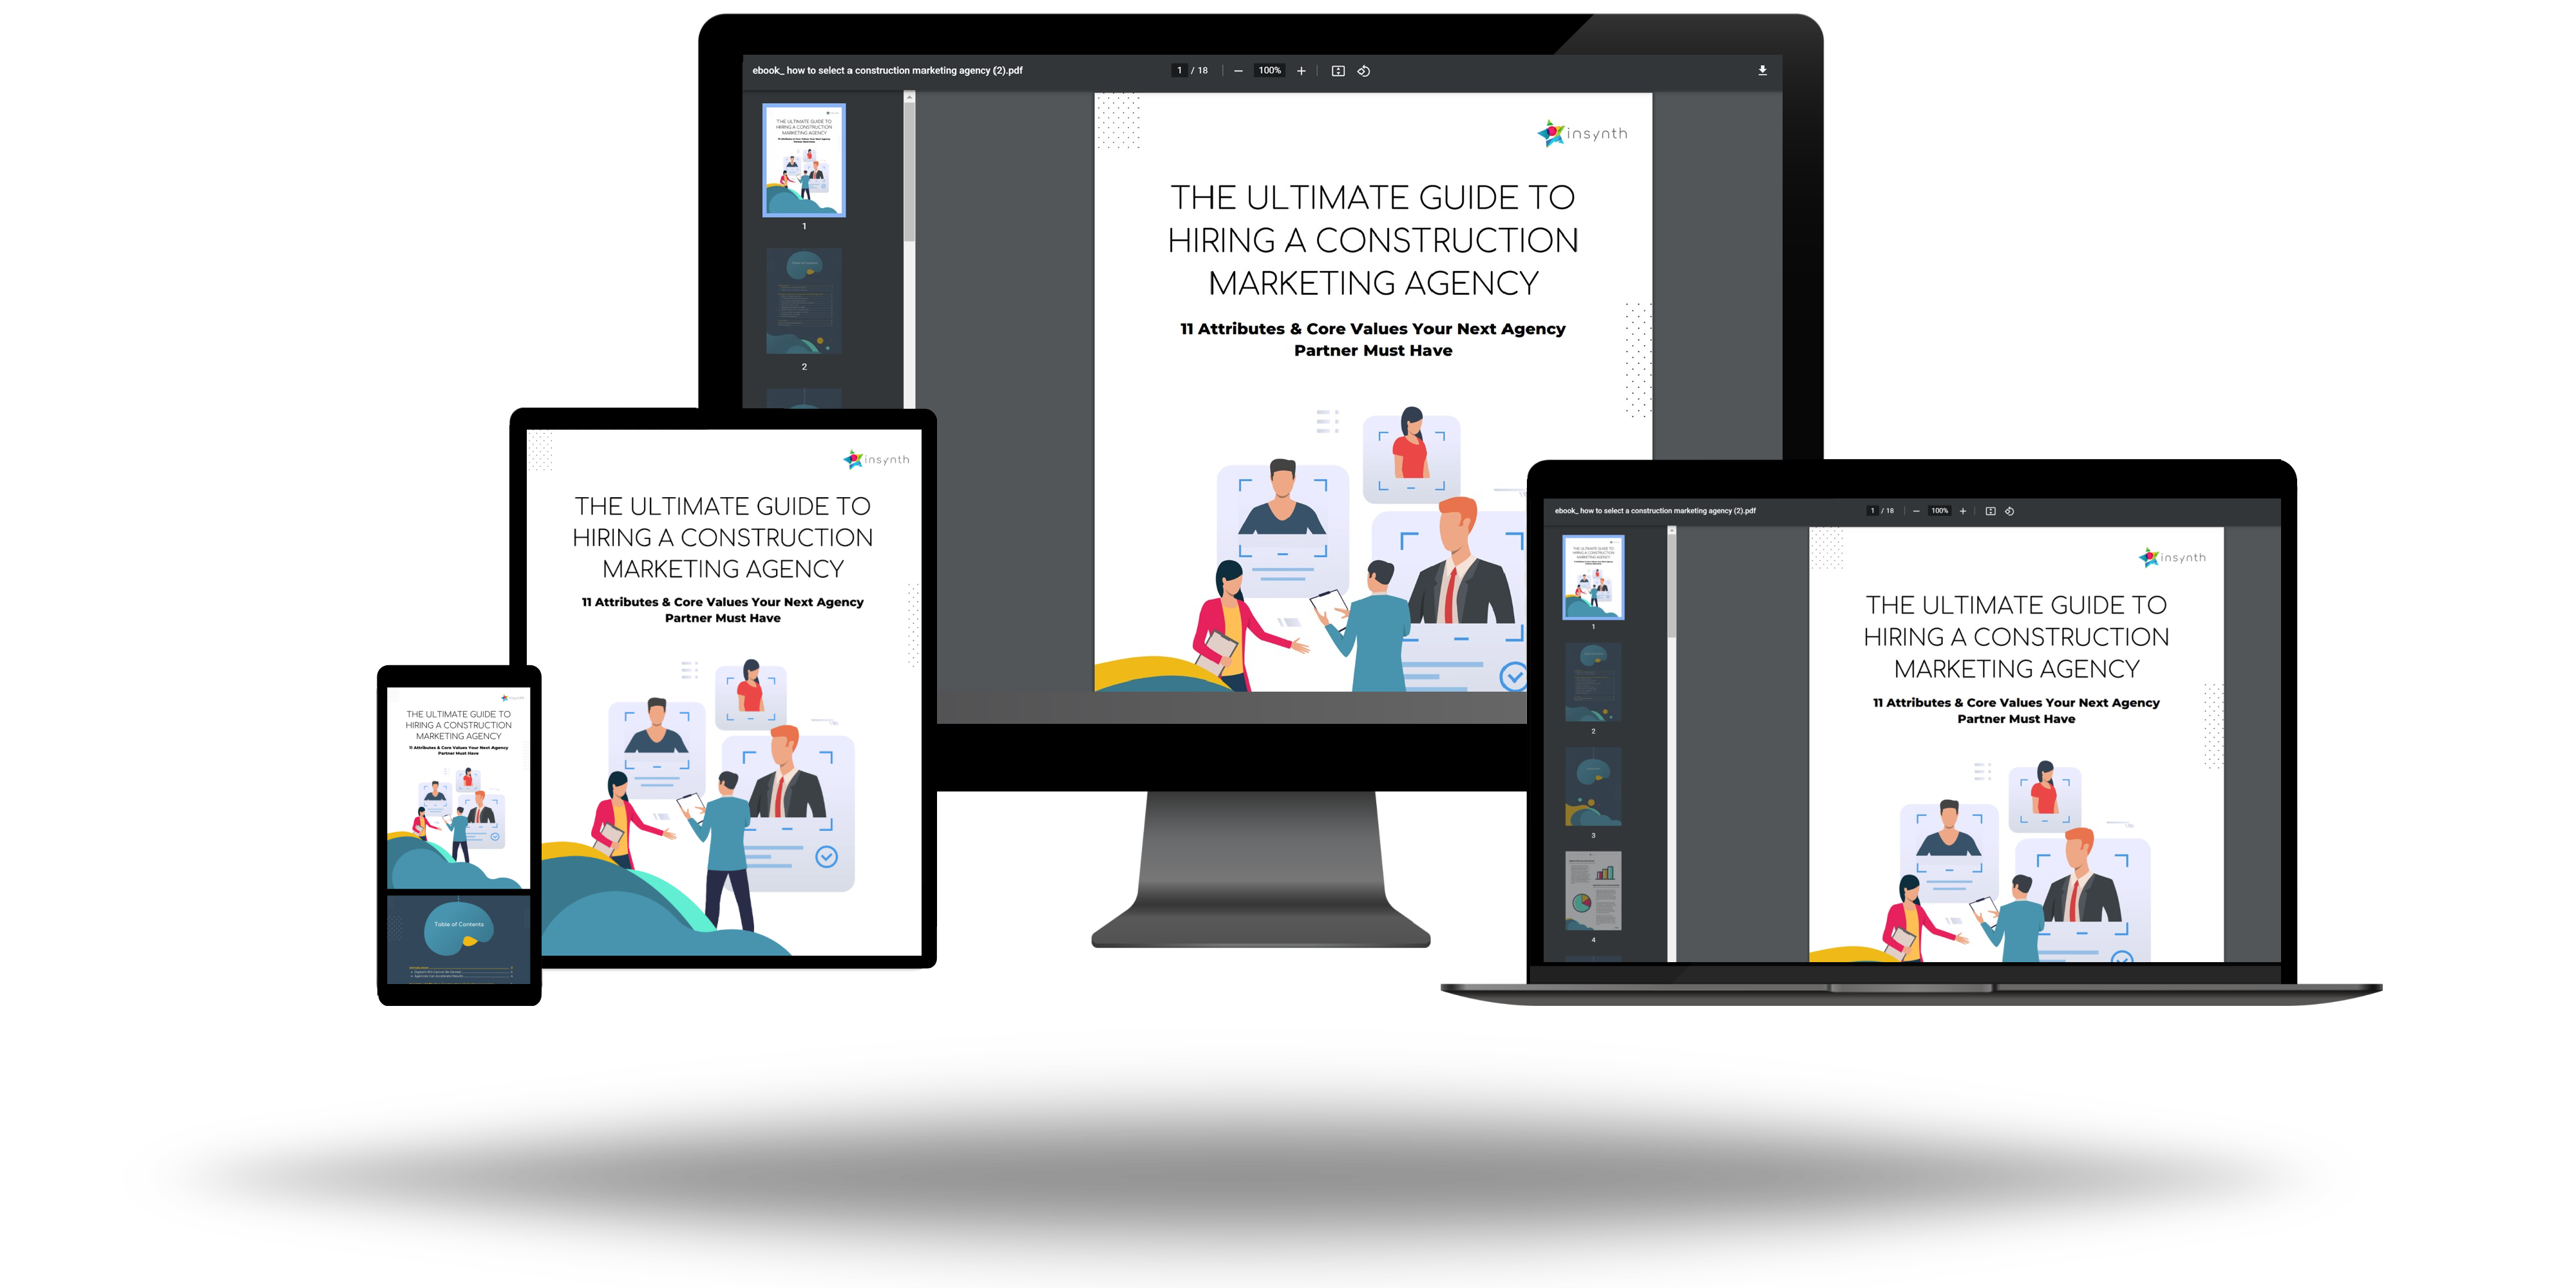 construction-marketing-guide-to-hiring-a-construction-marketing-agency-ebook-insynth-marketing-resources